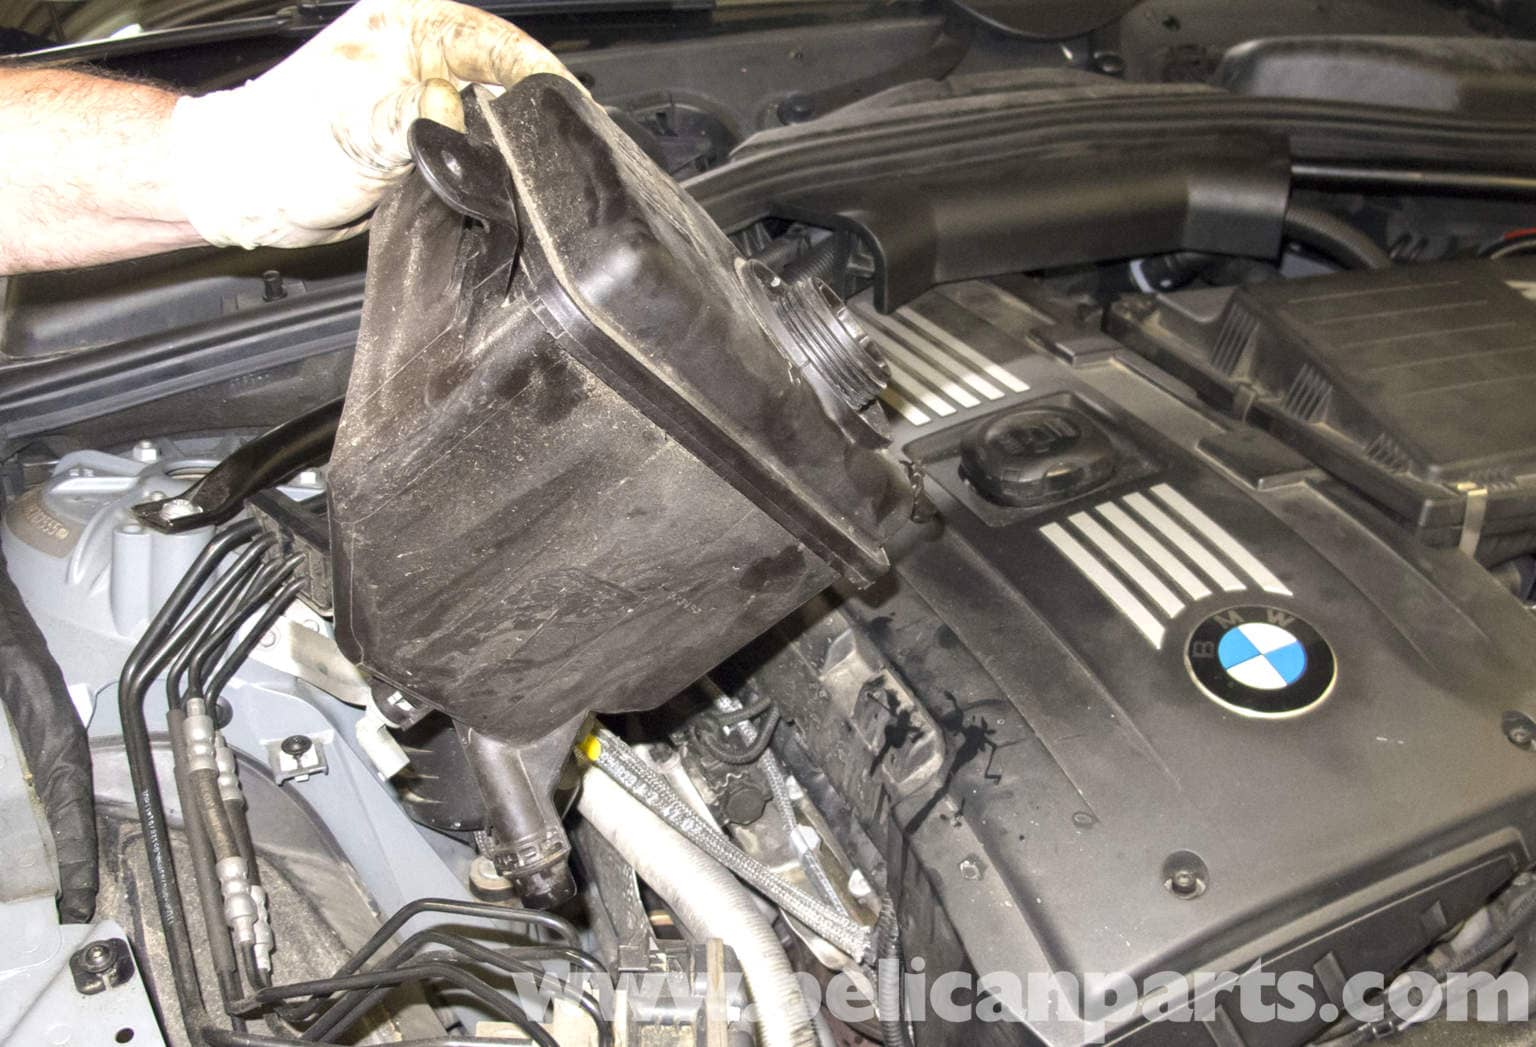 Bmw E60 5 Series Turbocharger Replacement N54 Engine Pelican 535i 1985 Electrical Repair Online Manual Sharing Large Image